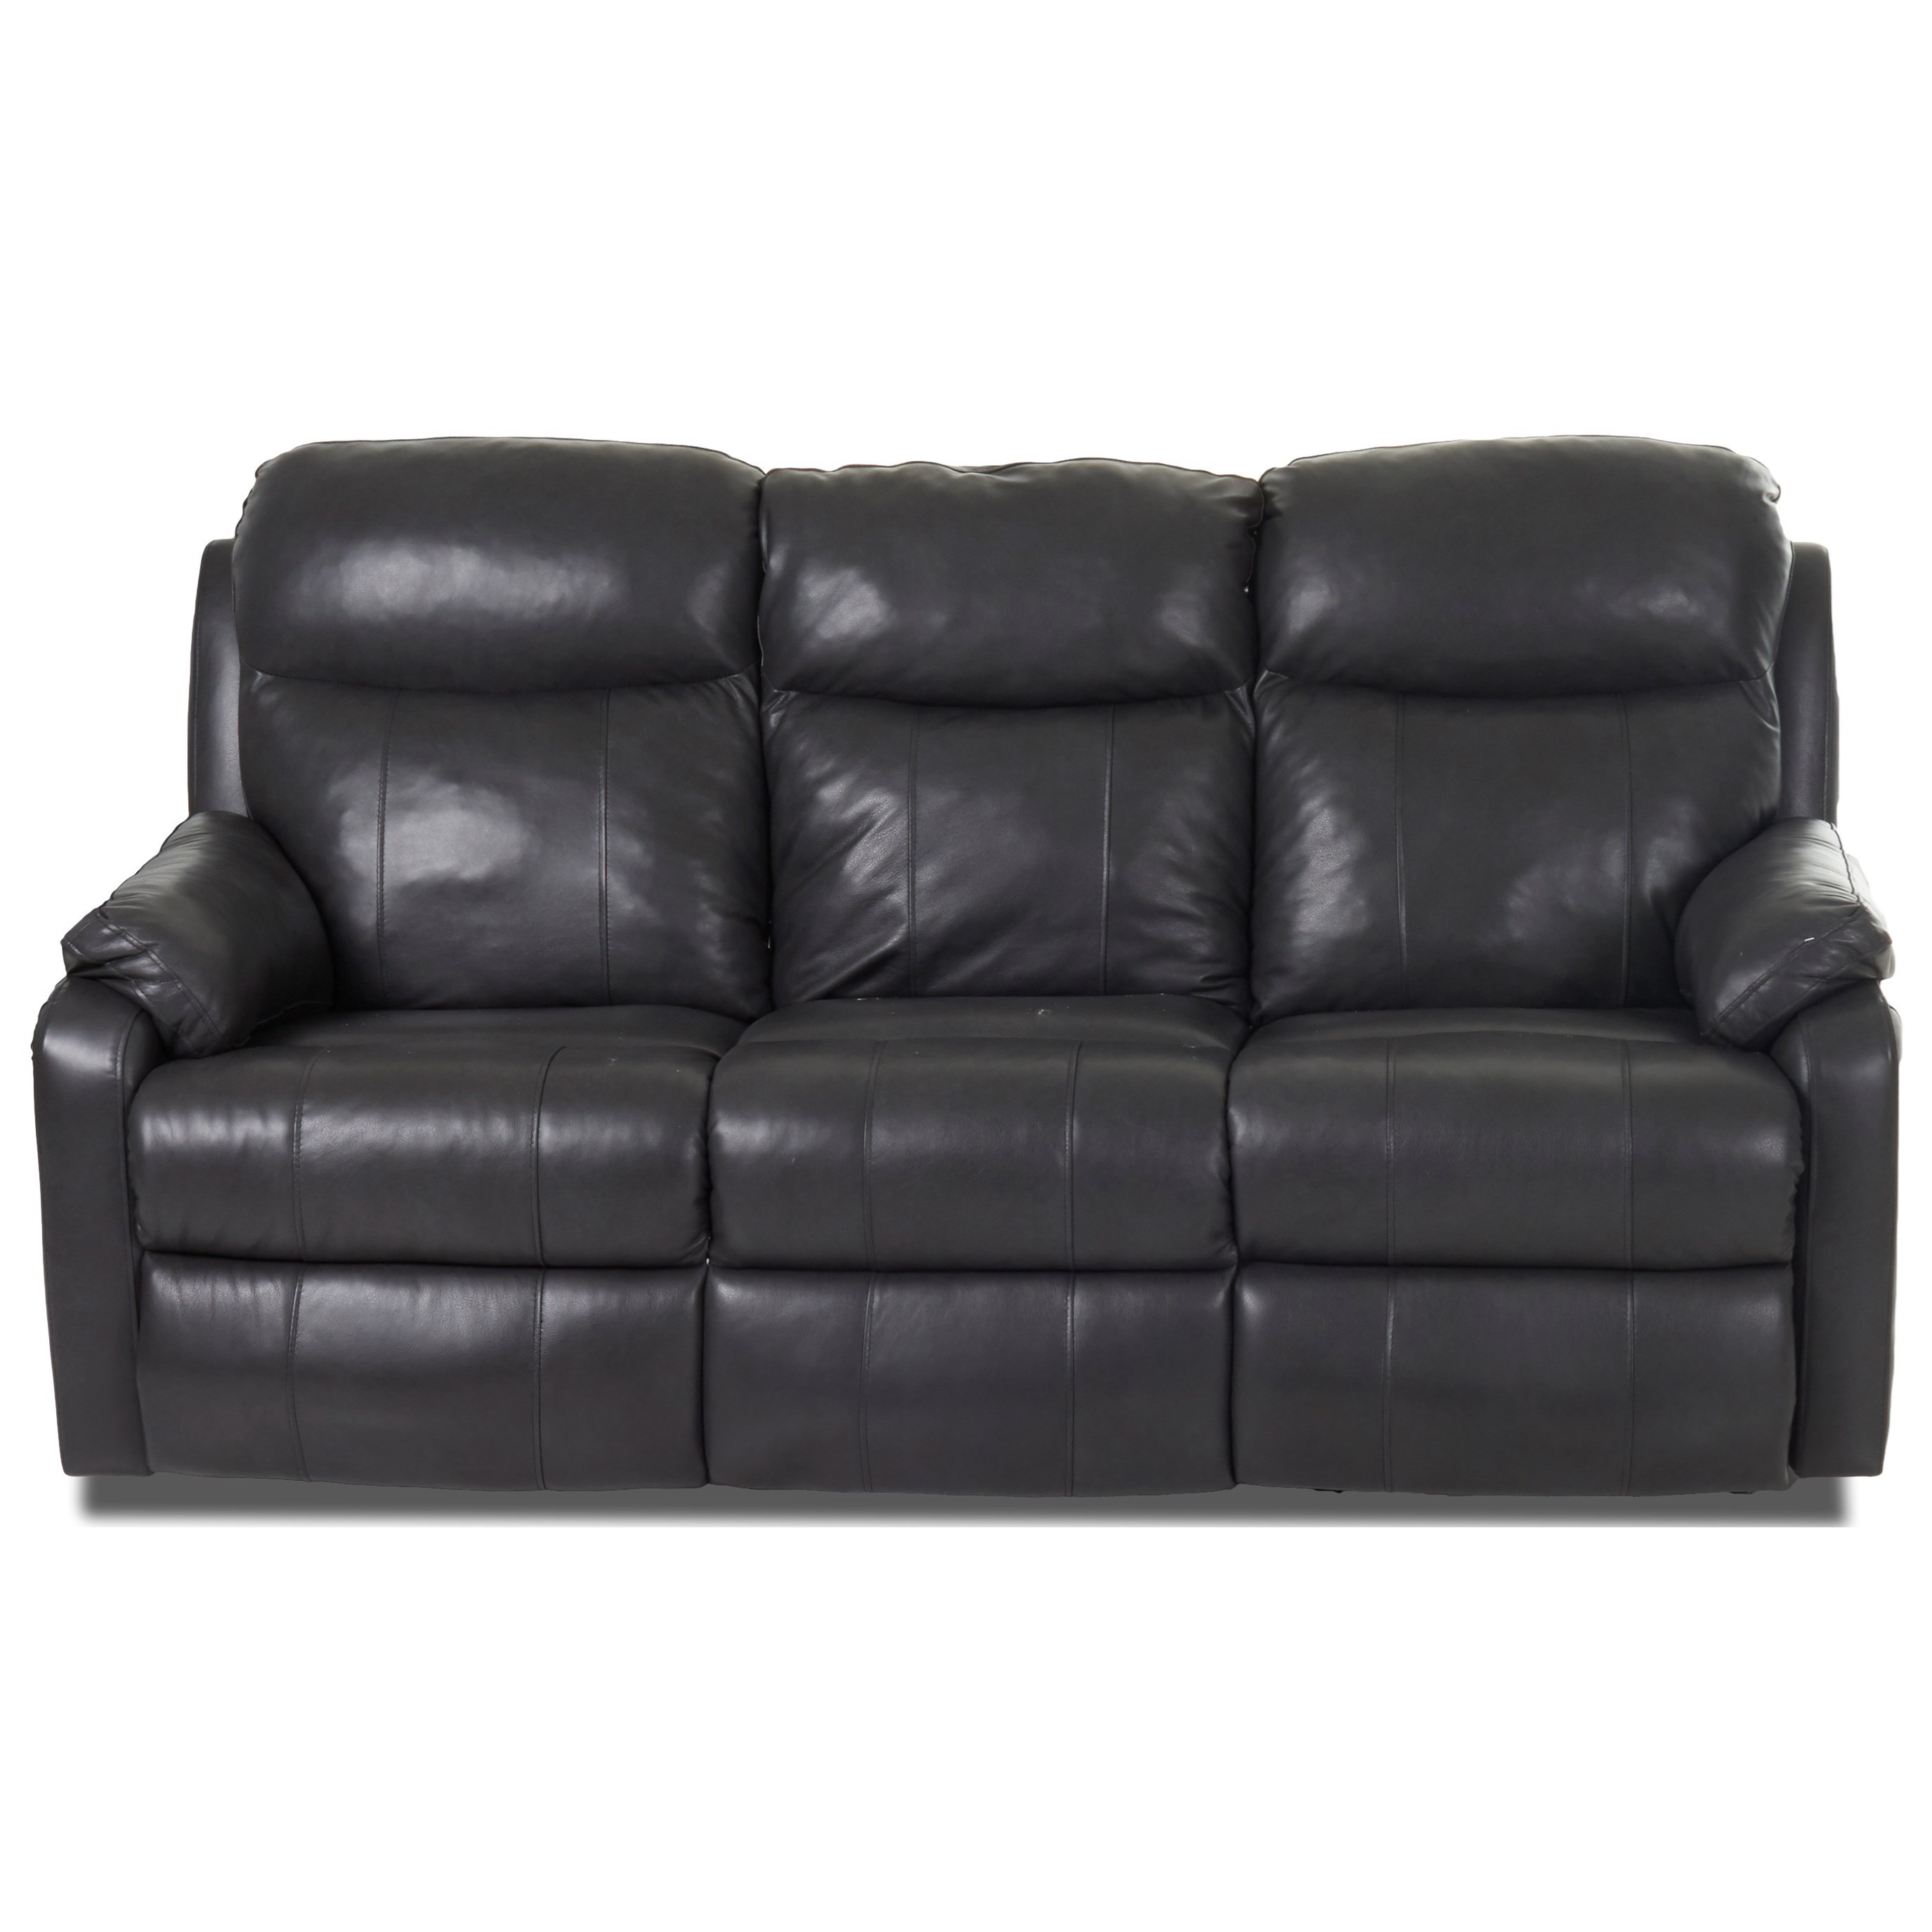 Casual Power Reclining Sofa with USB Charging Ports and Power Head & Lumbar